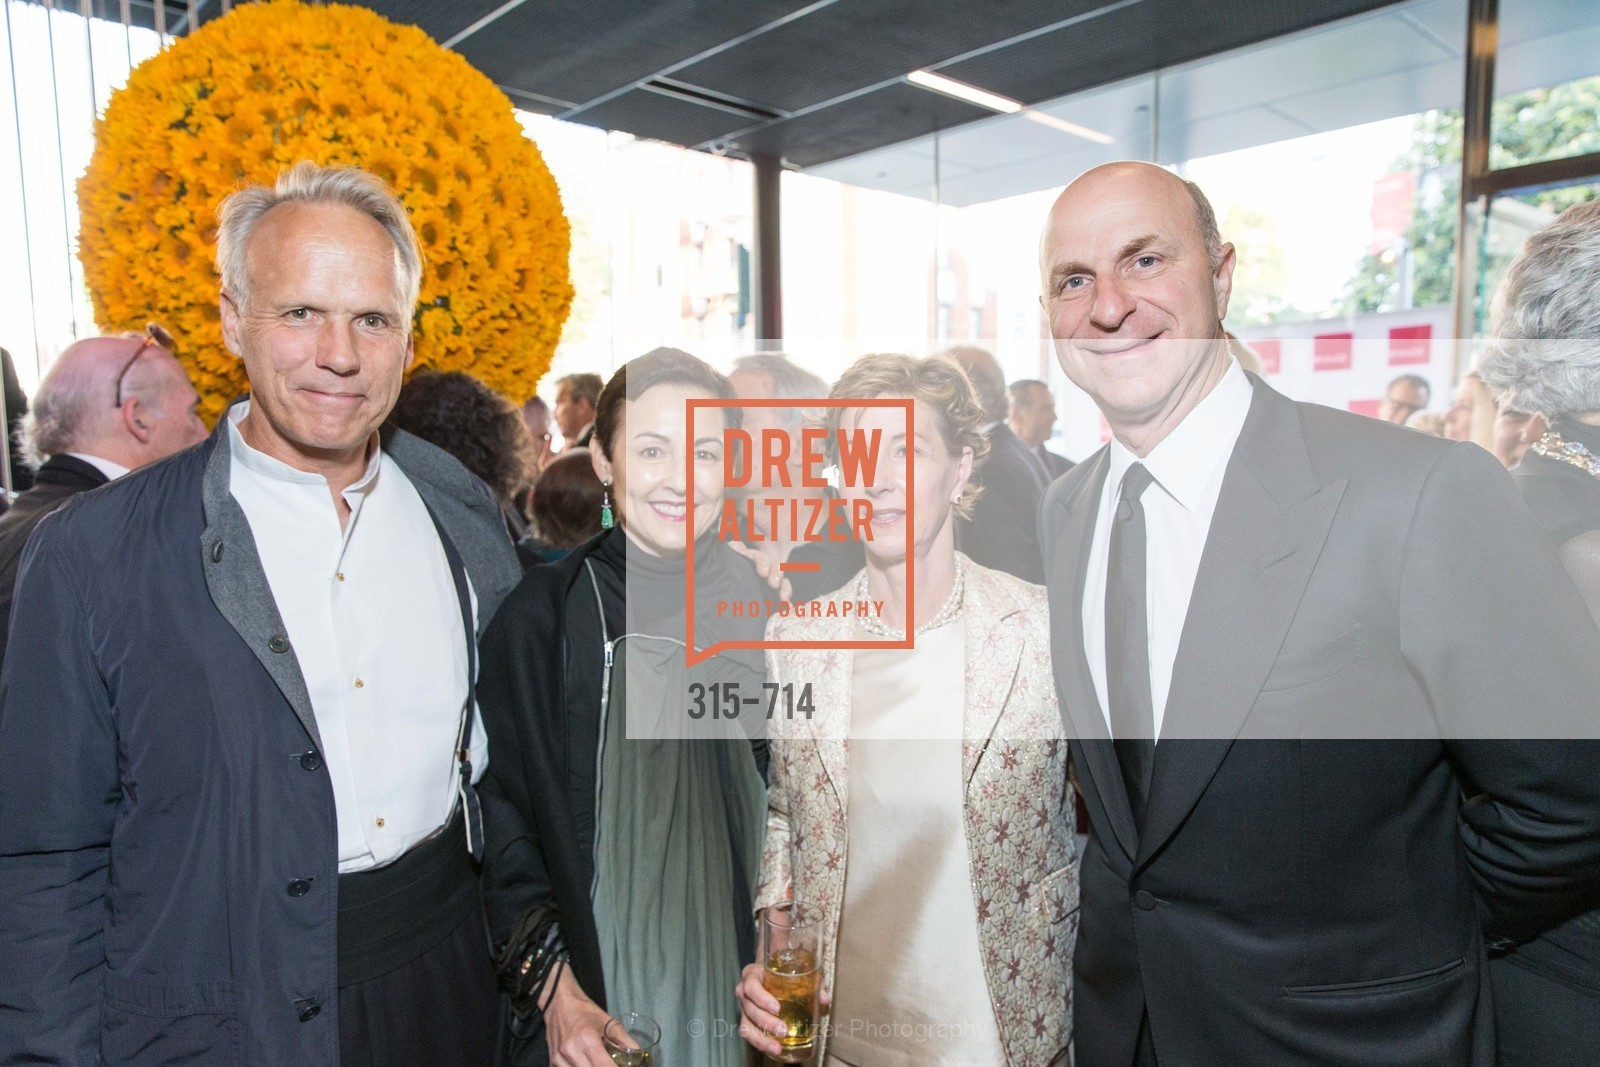 Steve Williamson, Sako Fisher, Alexandra Bowes, Bill Fisher, SFJAZZ Gala 2015 Honors Joni Mitchell with Lifetime Achievement Award, US, May 9th, 2015,Drew Altizer, Drew Altizer Photography, full-service agency, private events, San Francisco photographer, photographer california